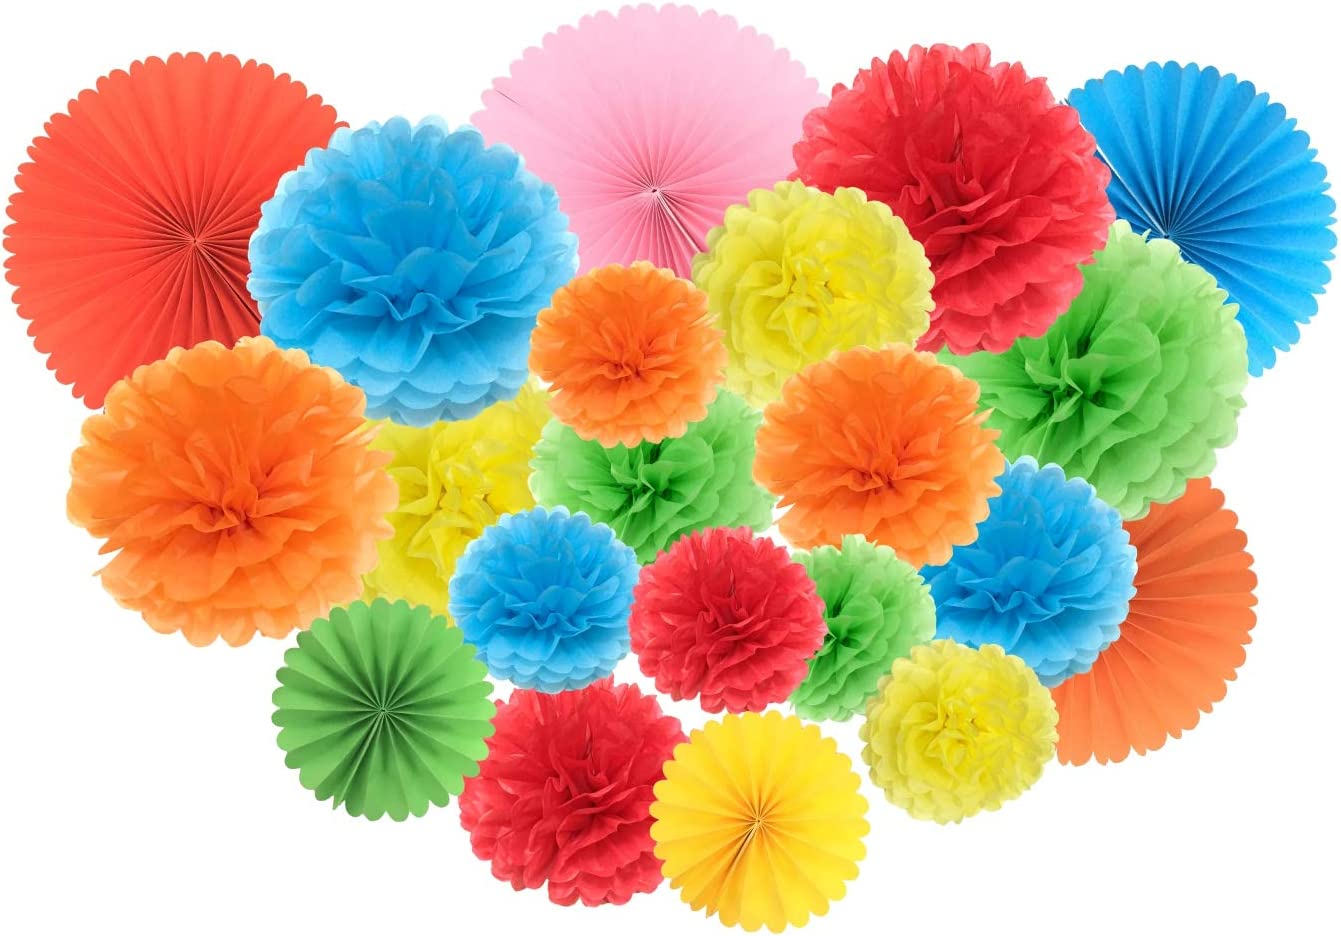 Tissue Paper Pom Poms and Tissue Paper Fans for Party Decorations Wedding Decor and Outdoor Decoration 15 Pcs Pom Poms and 6 Pcs Paper Fans …